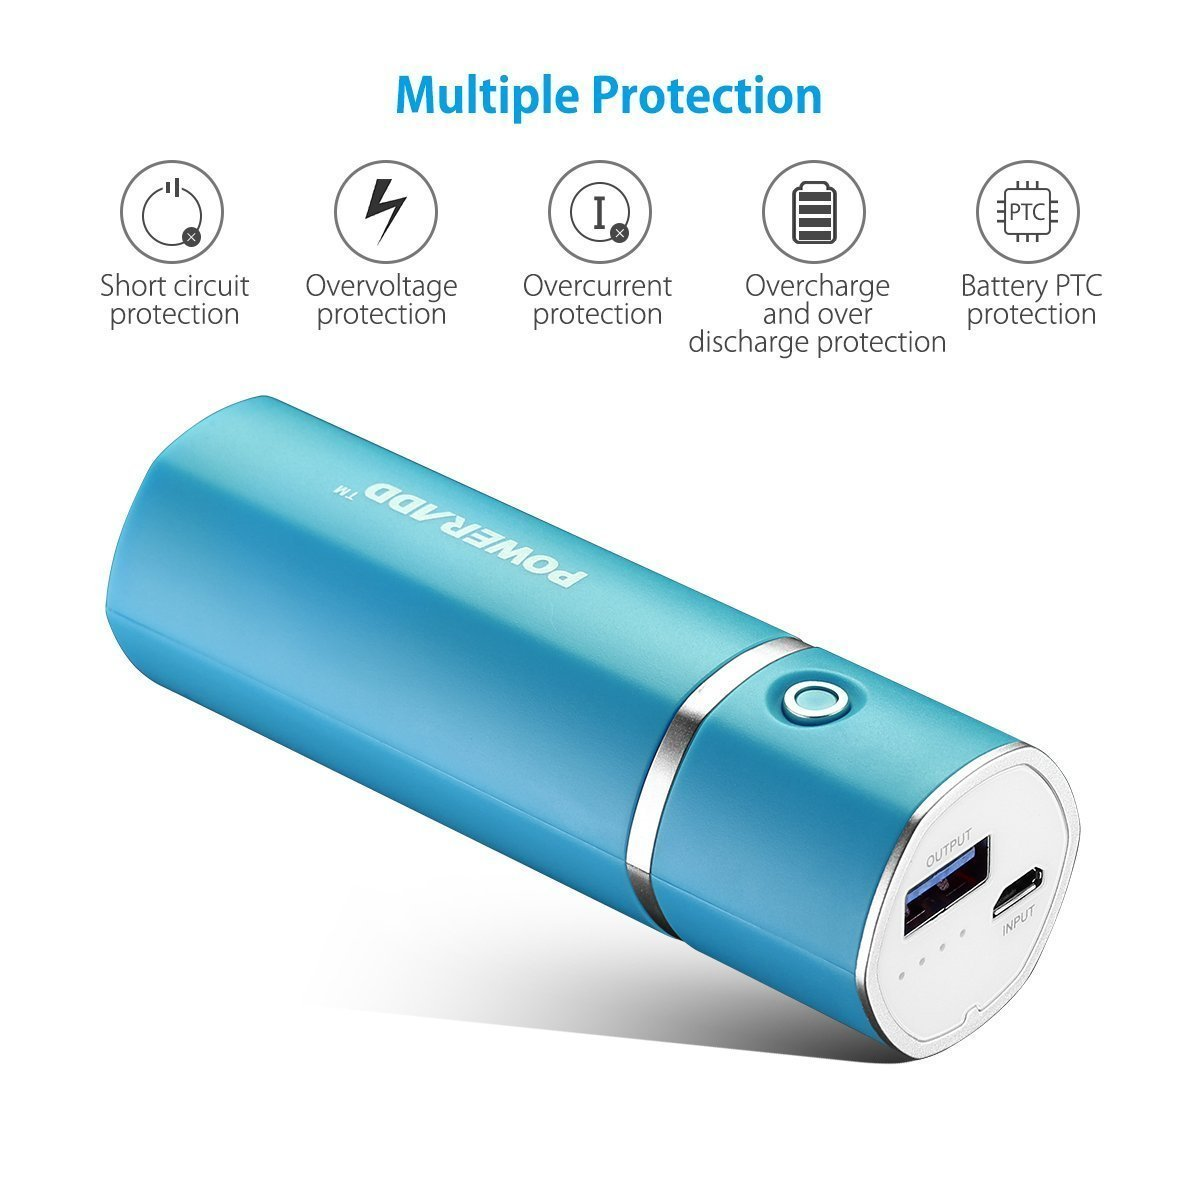 [Upgraded] Poweradd Slim 2 Most Compact 5000mAh External Battery 2.1A Ouput Portable Charger with Smart Charge for iPhones, iPad, Samsung Galaxy, HTC and More - Blue by POWERADD (Image #6)